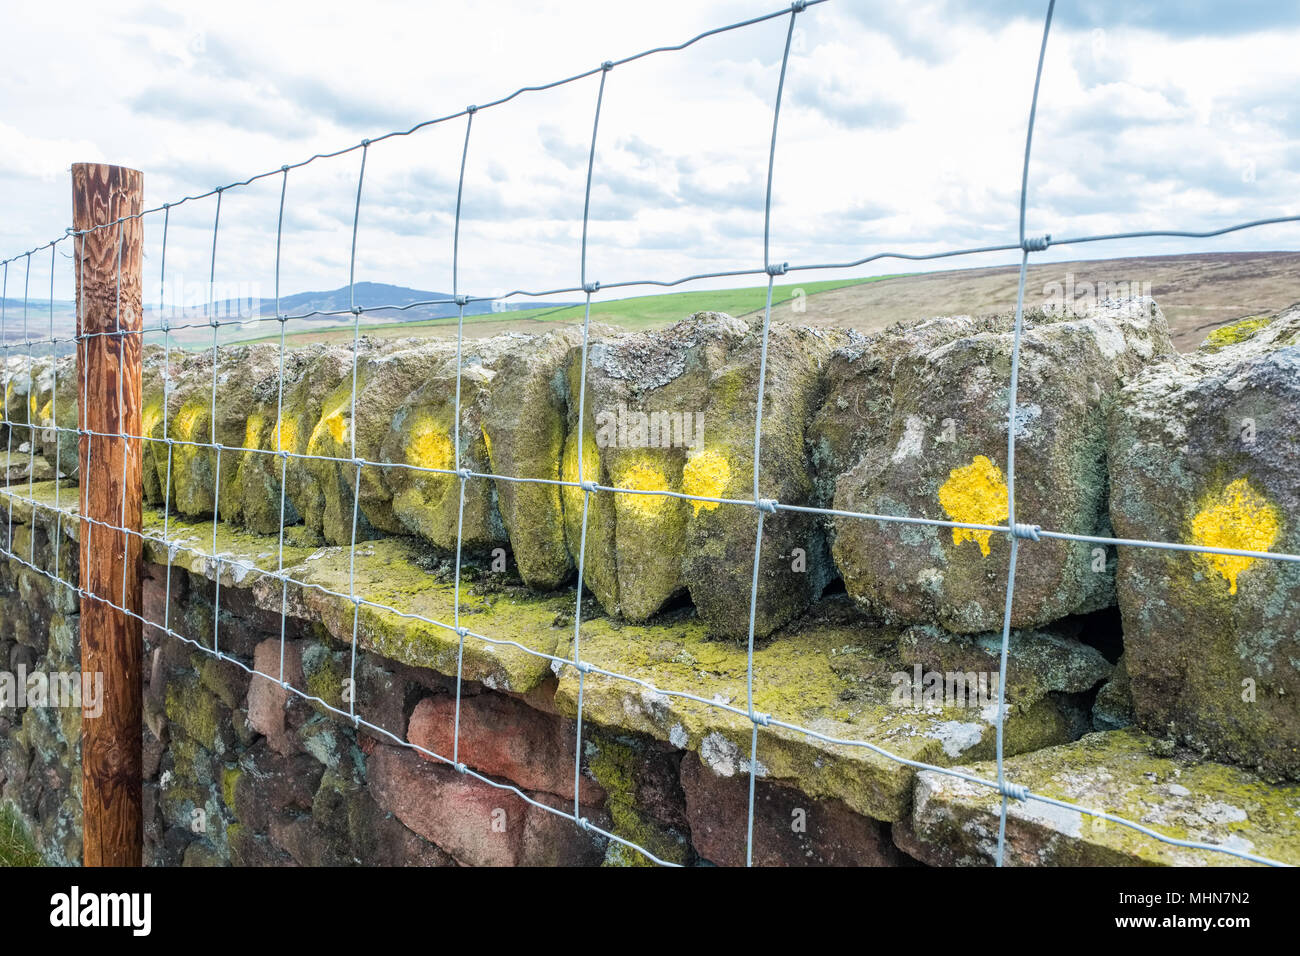 Drystone wall with painted coping stones to deter theft, Peak District - Stock Image